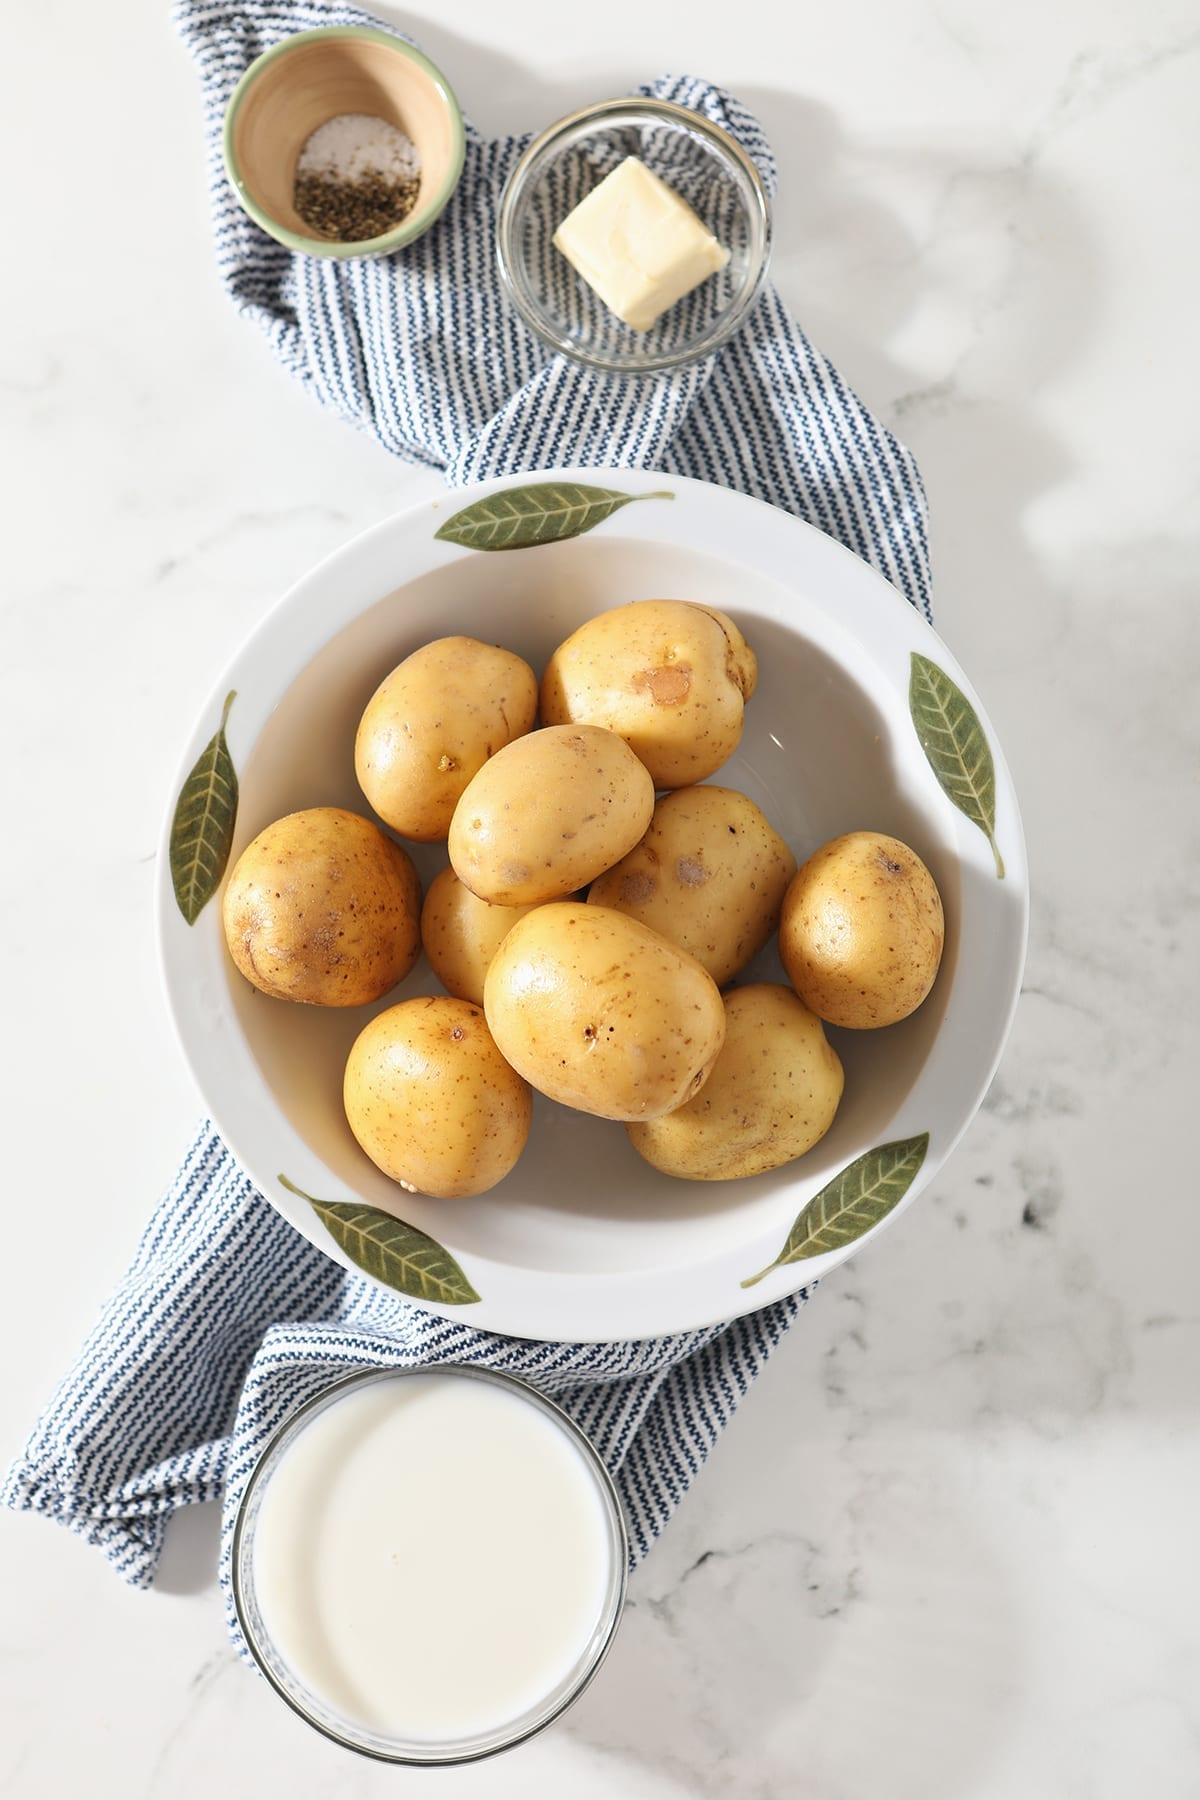 Gold potatoes sit in a decorative bowl on top of a blue and white striped towel next to a bowl of milk, butter and seasonings